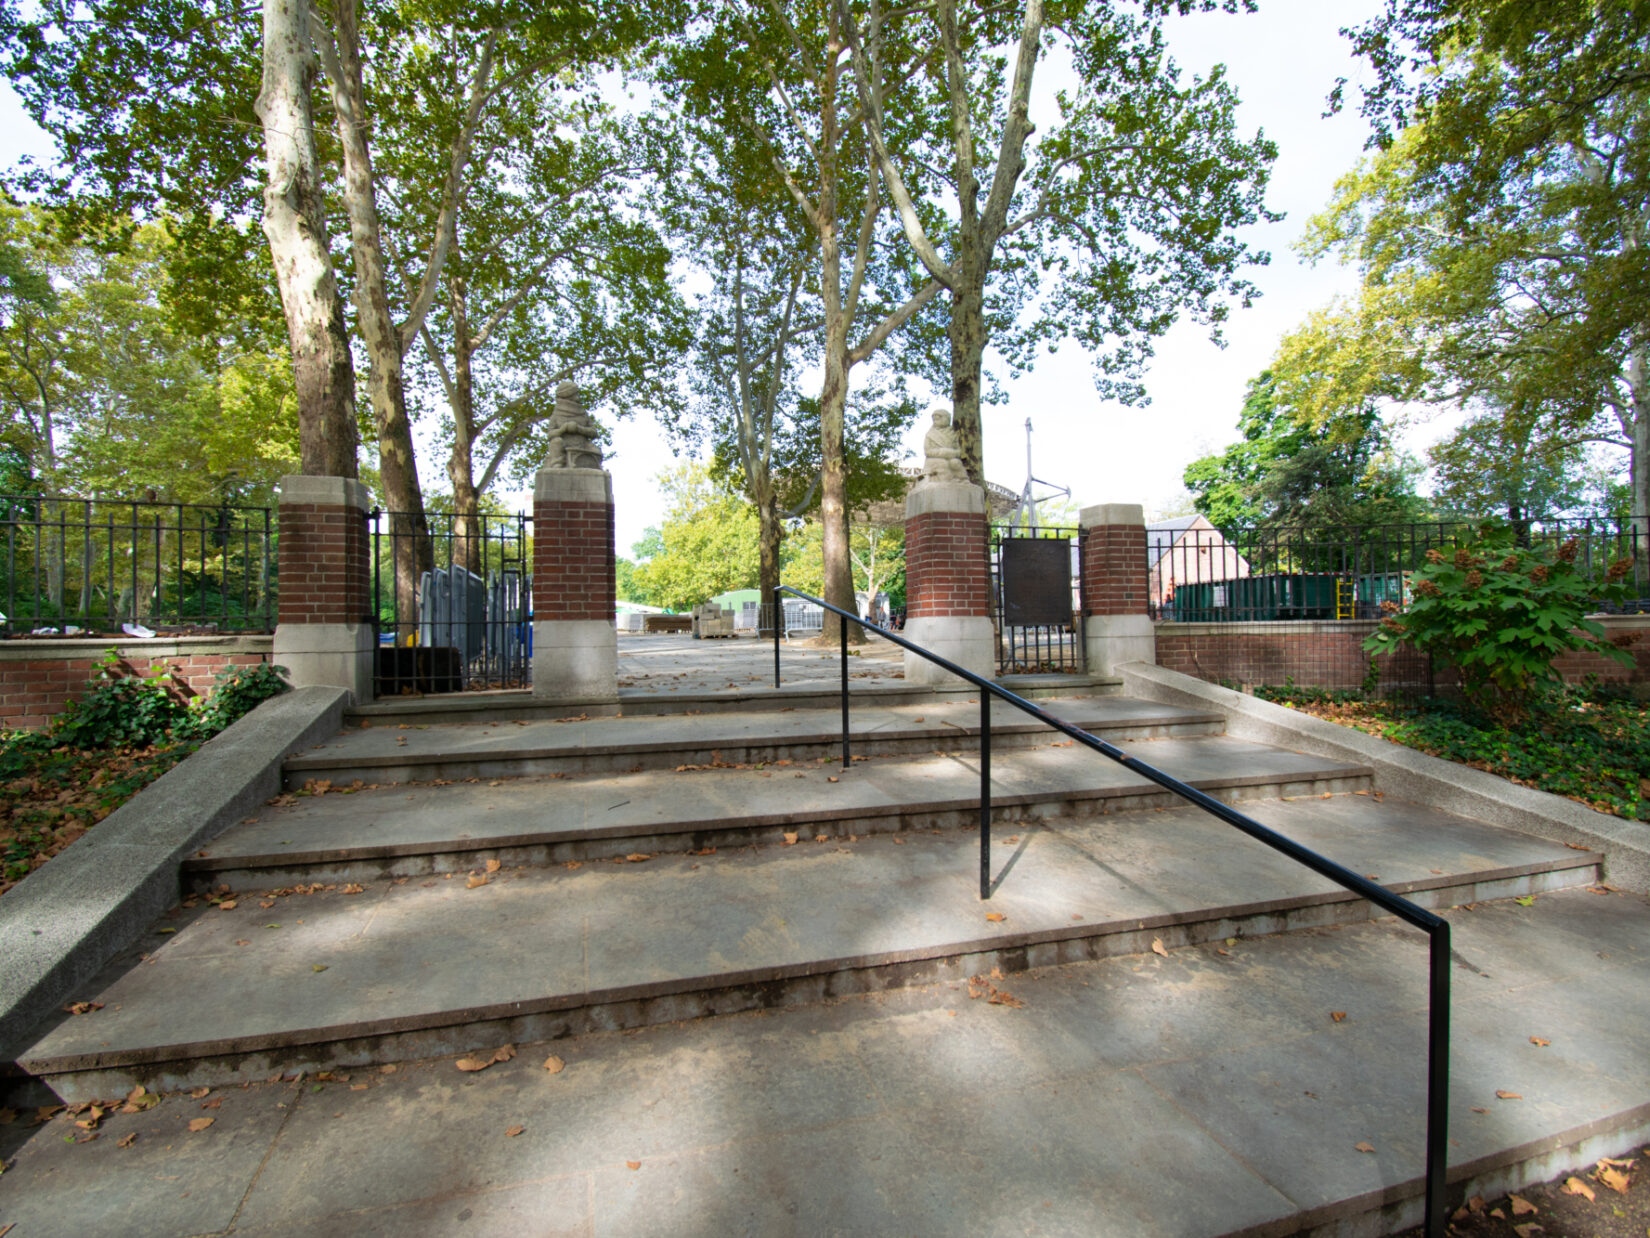 A view up the steps to the entrance of the Rumsey Playfield